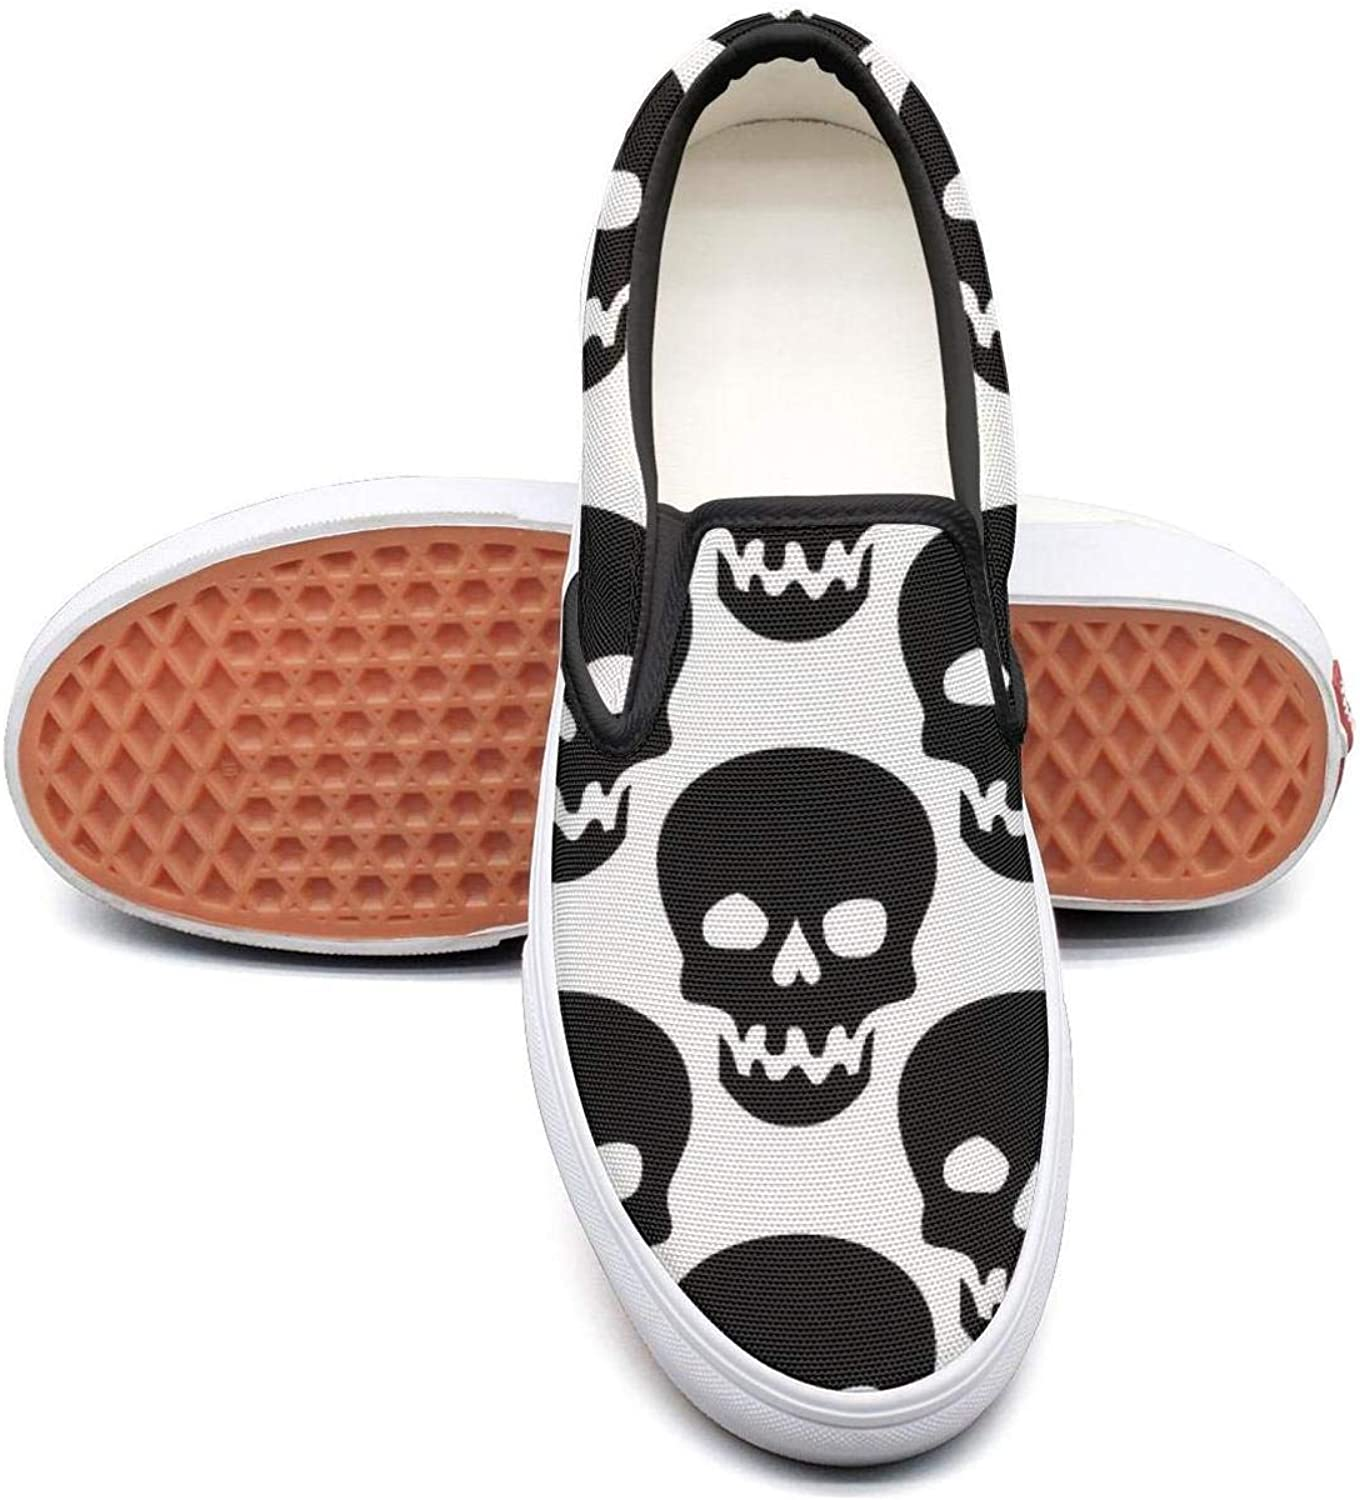 Black and White Skull Slip On Superior Comfort Loafers Canvas shoes for Women Comfortable